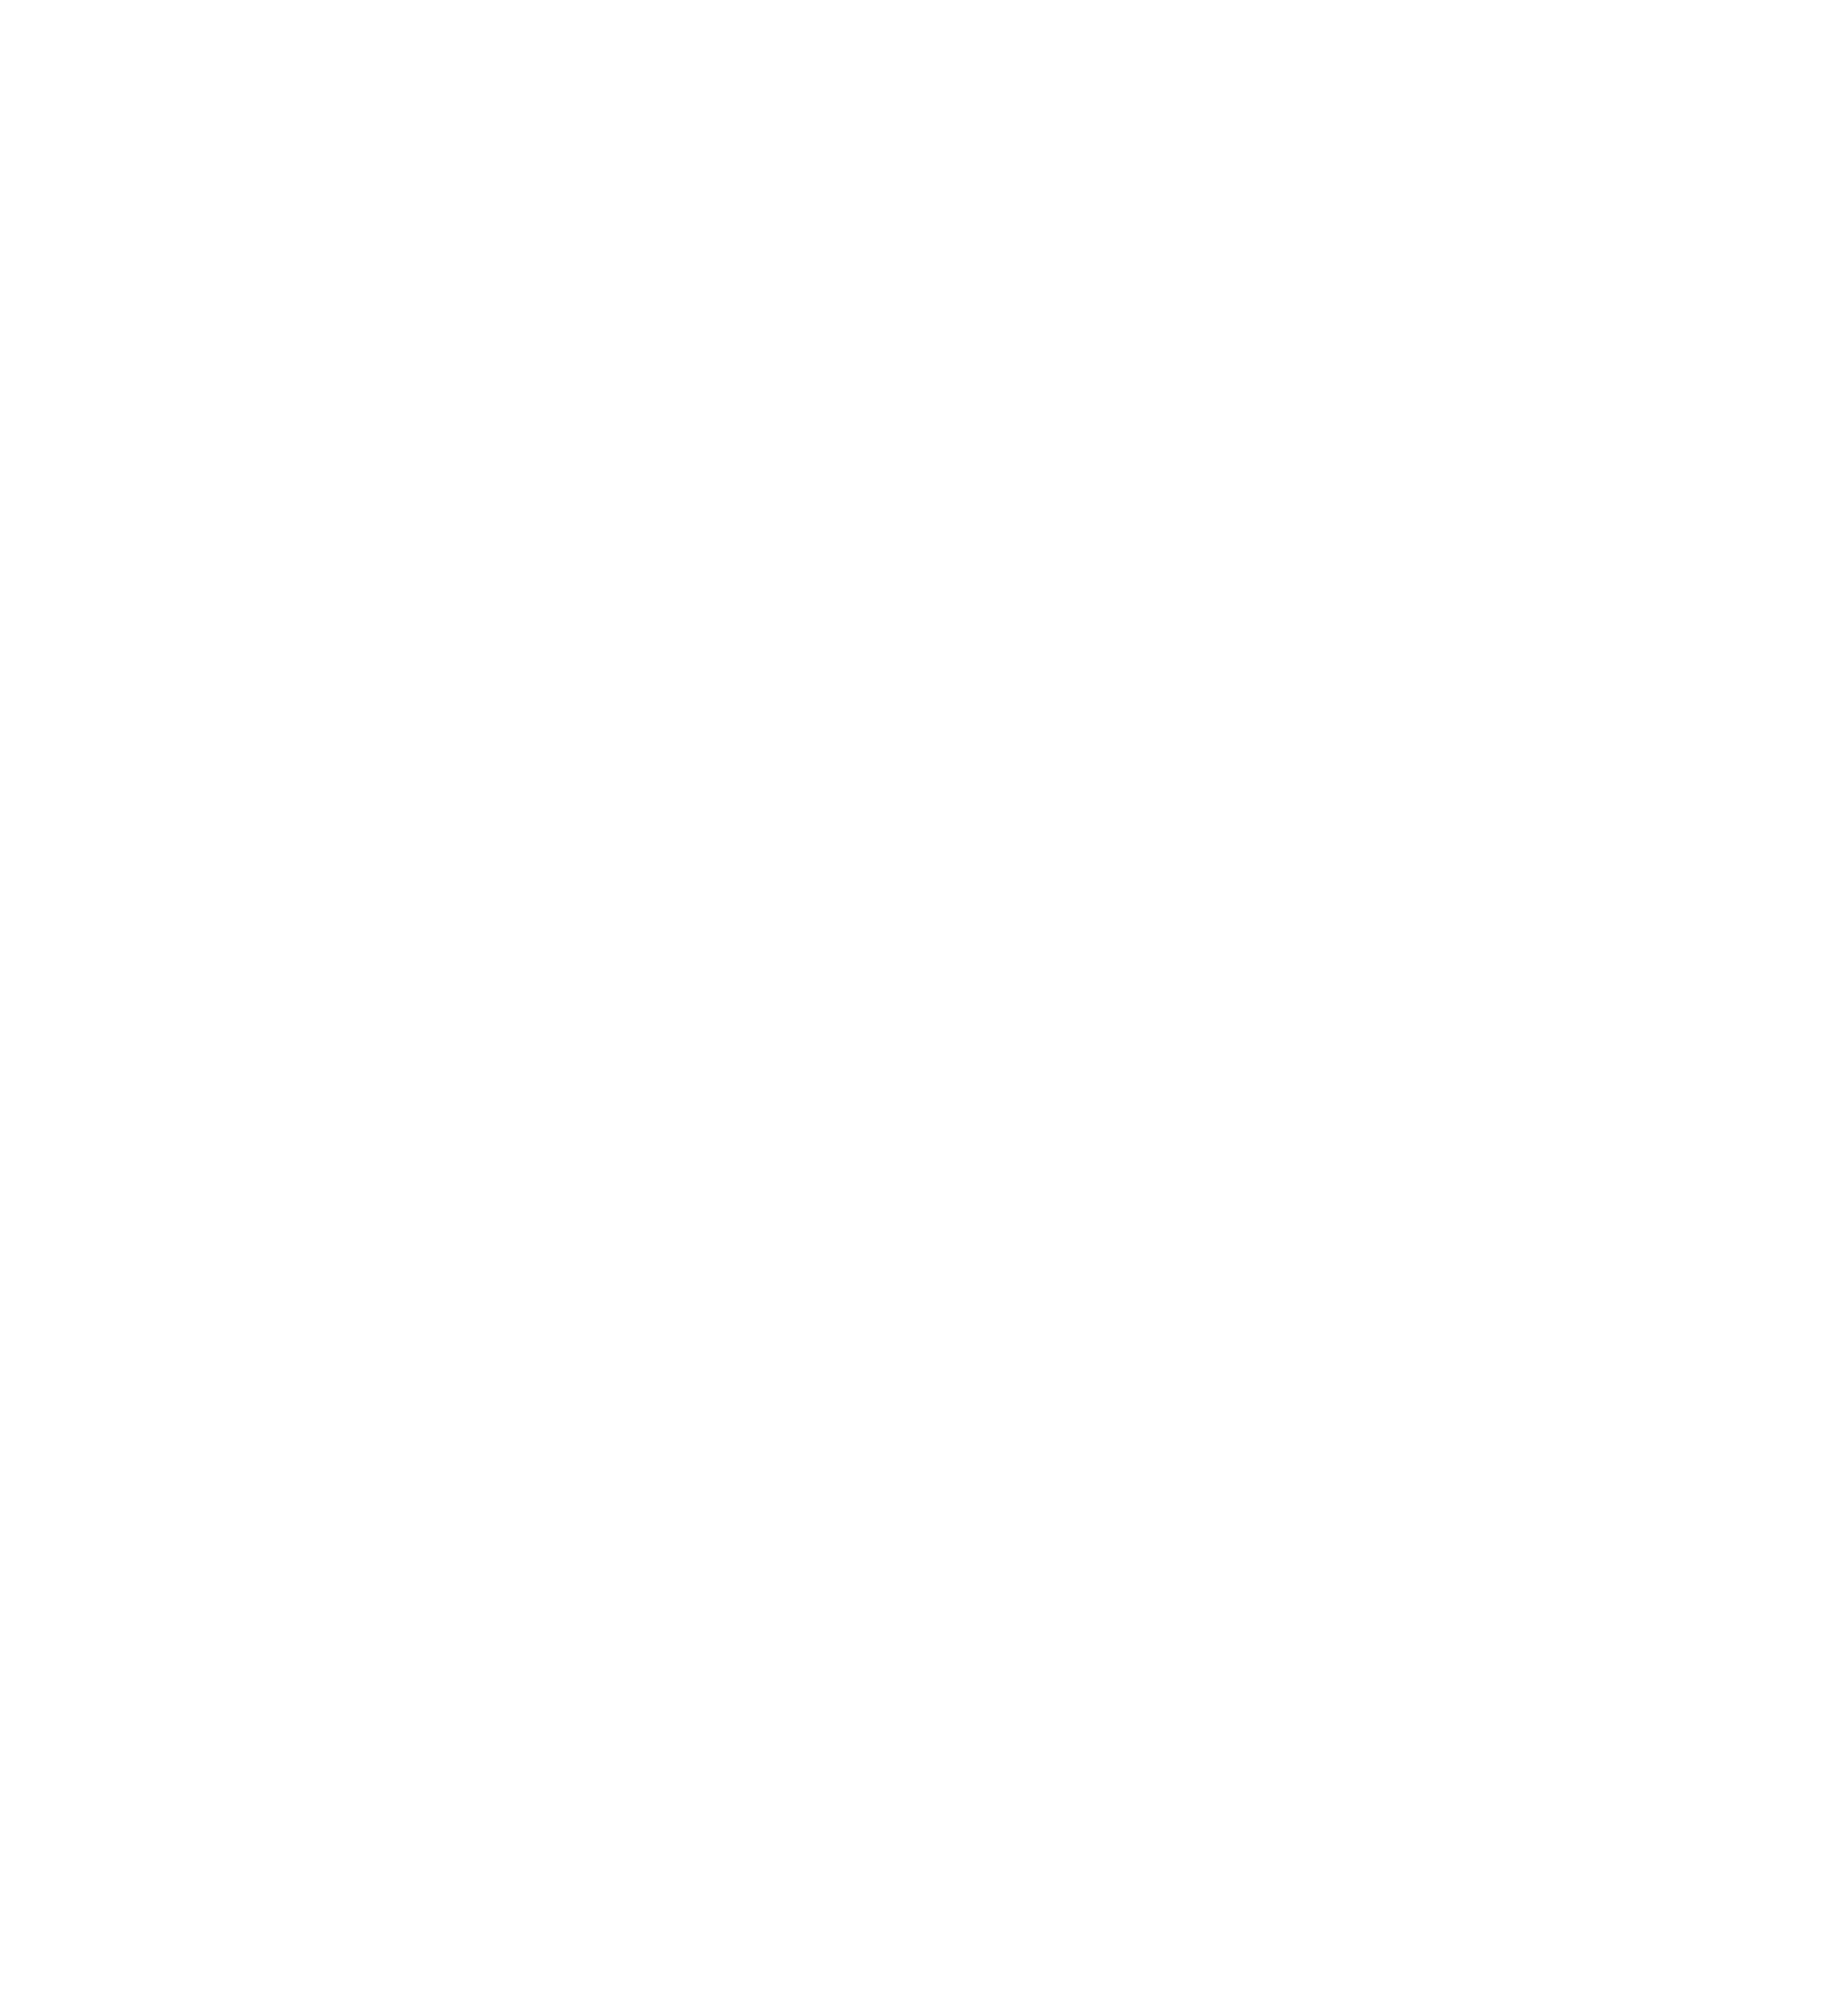 https://revlys.fr/wp-content/uploads/sites/2/2019/11/Logo-Revlys-Page-Accueil-Blanc-Transparent-Typo.png